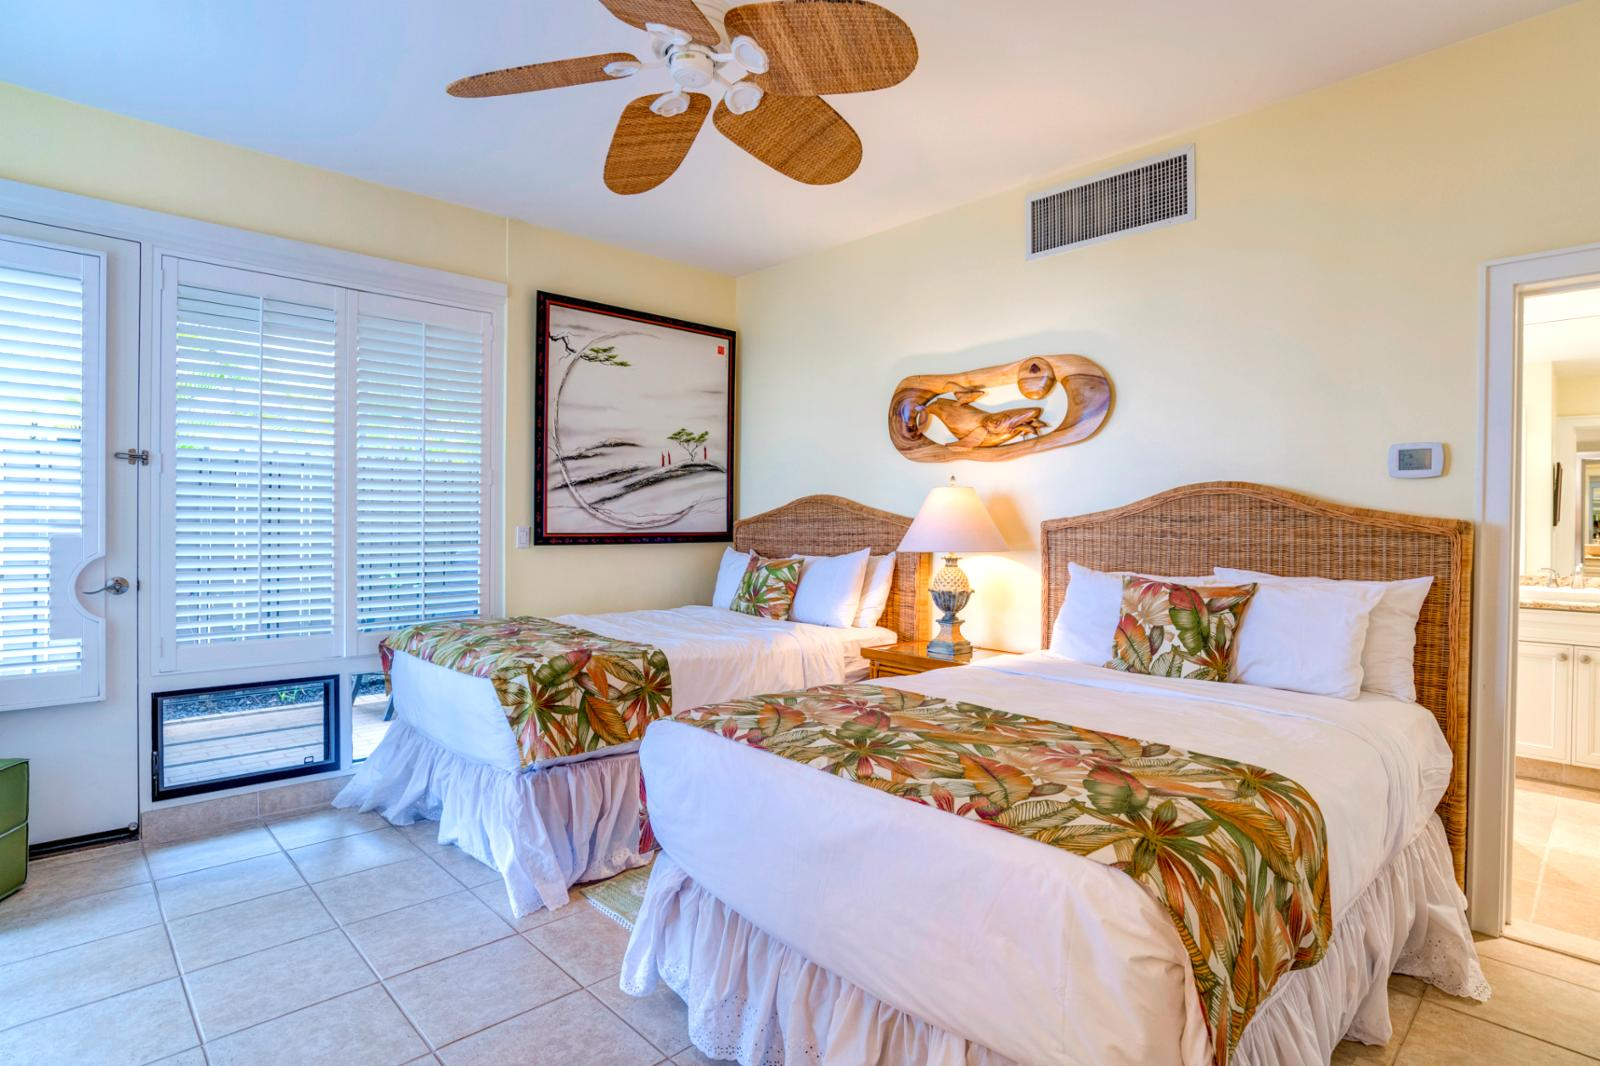 Newly upgraded furnishings and equipped with ceiling fans throughout